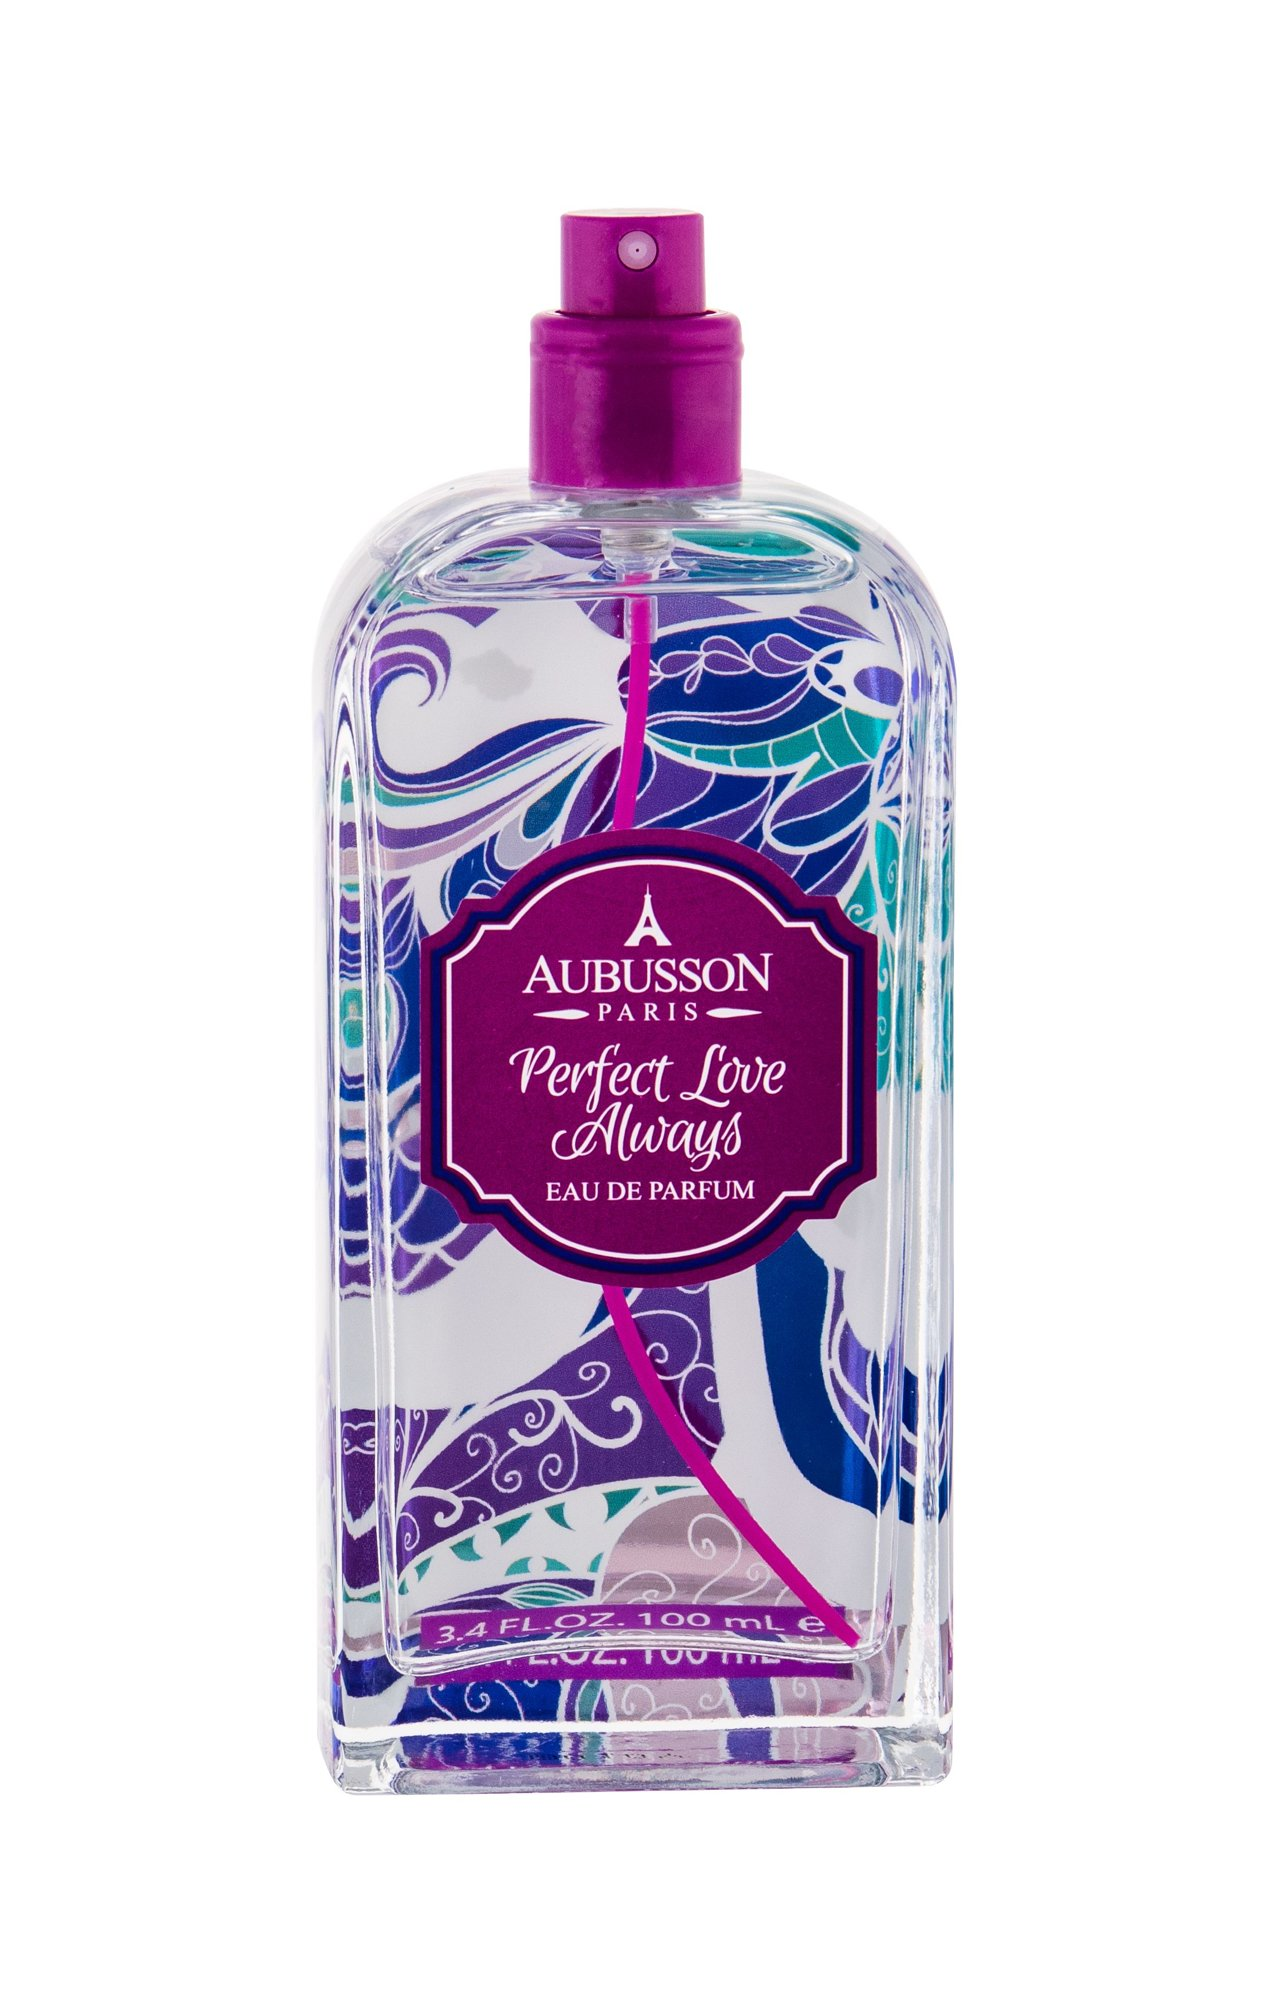 Aubusson Perfect Love Always Eau de Parfum 100ml